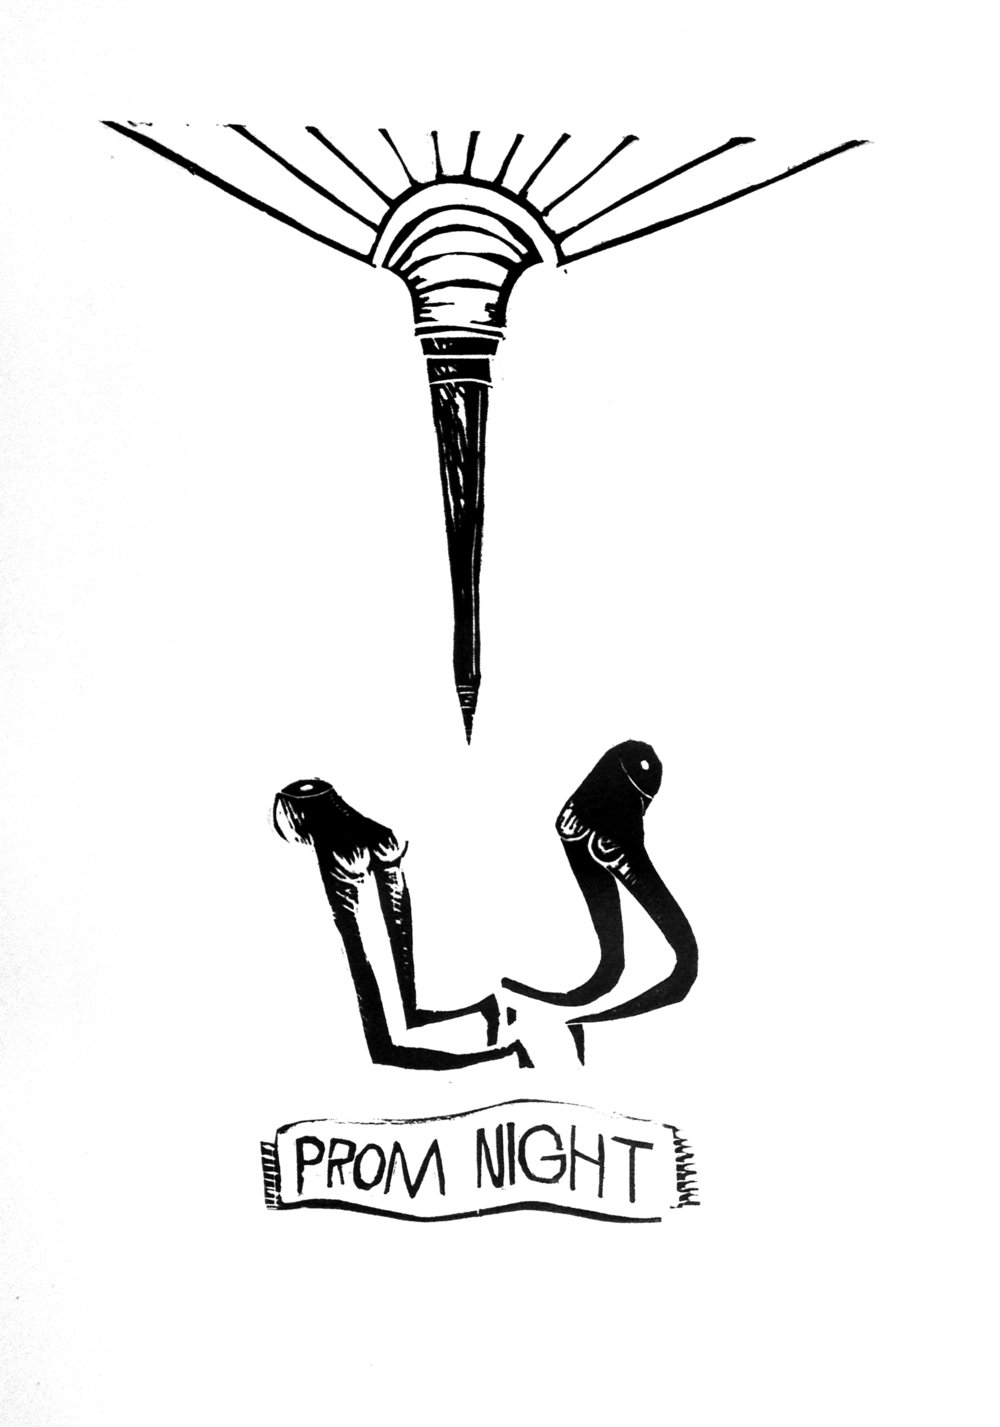 Prom Night, 2013, linoleum block print